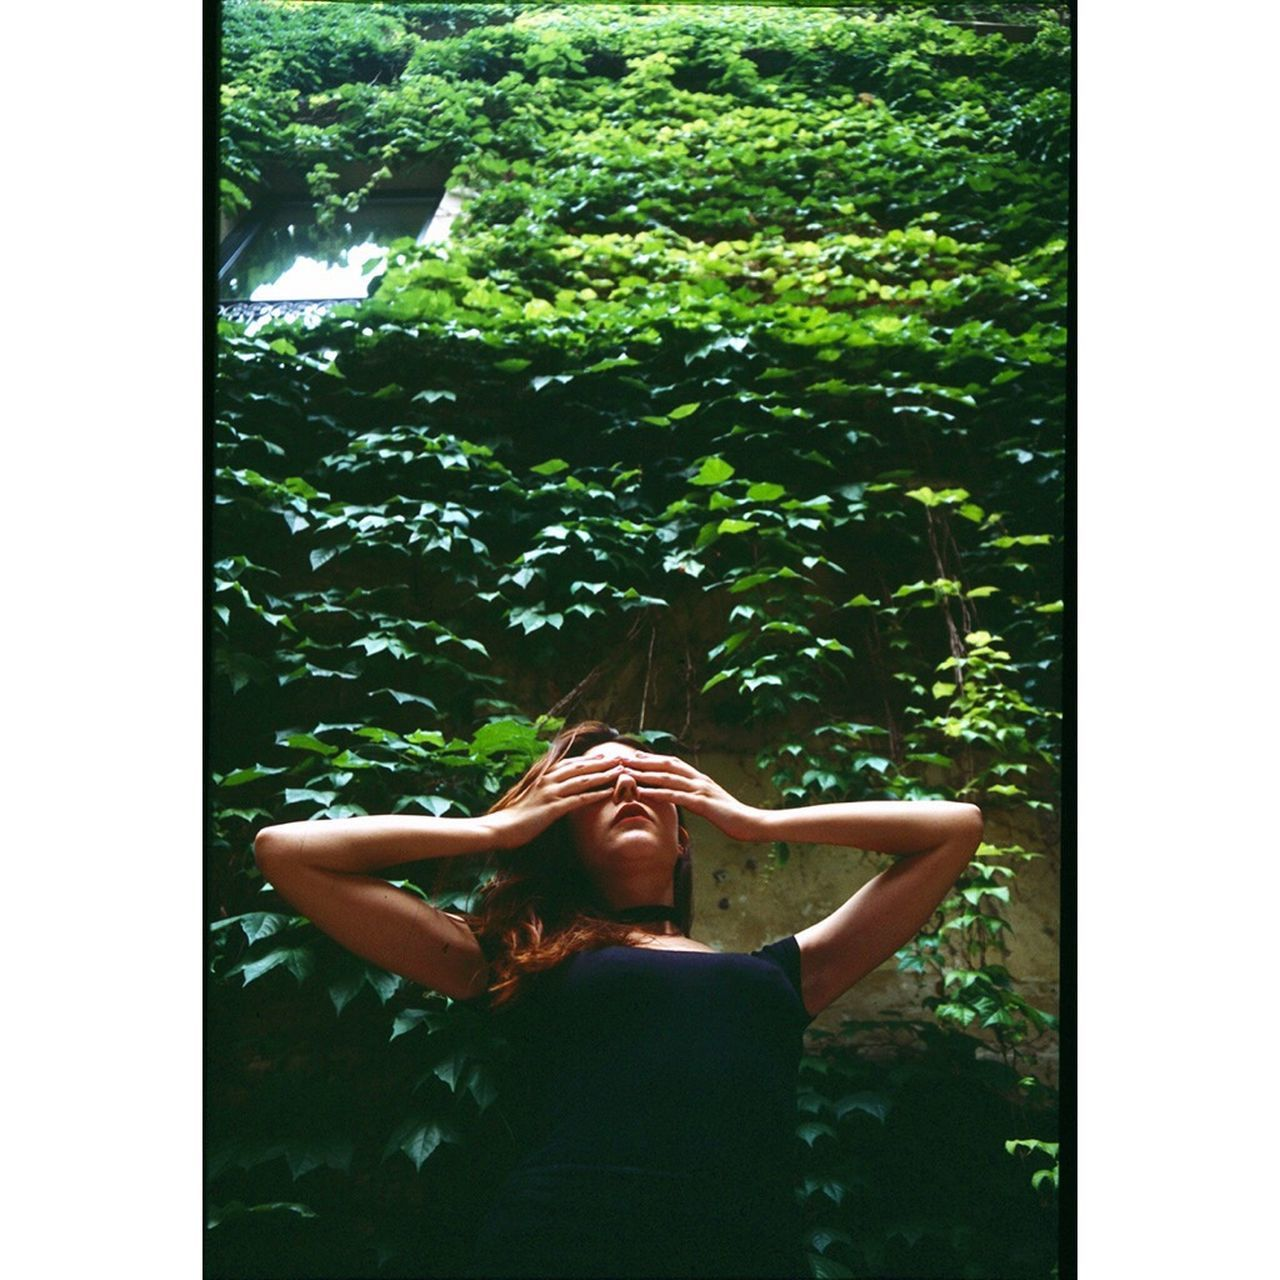 Federica, may 2017. One Person Only Women Outdoors Nature The Week On EyeEm Filmisnotdead Film Photography Analogue Photography Analog Camera Tree Low Angle View The Week On EyeEm